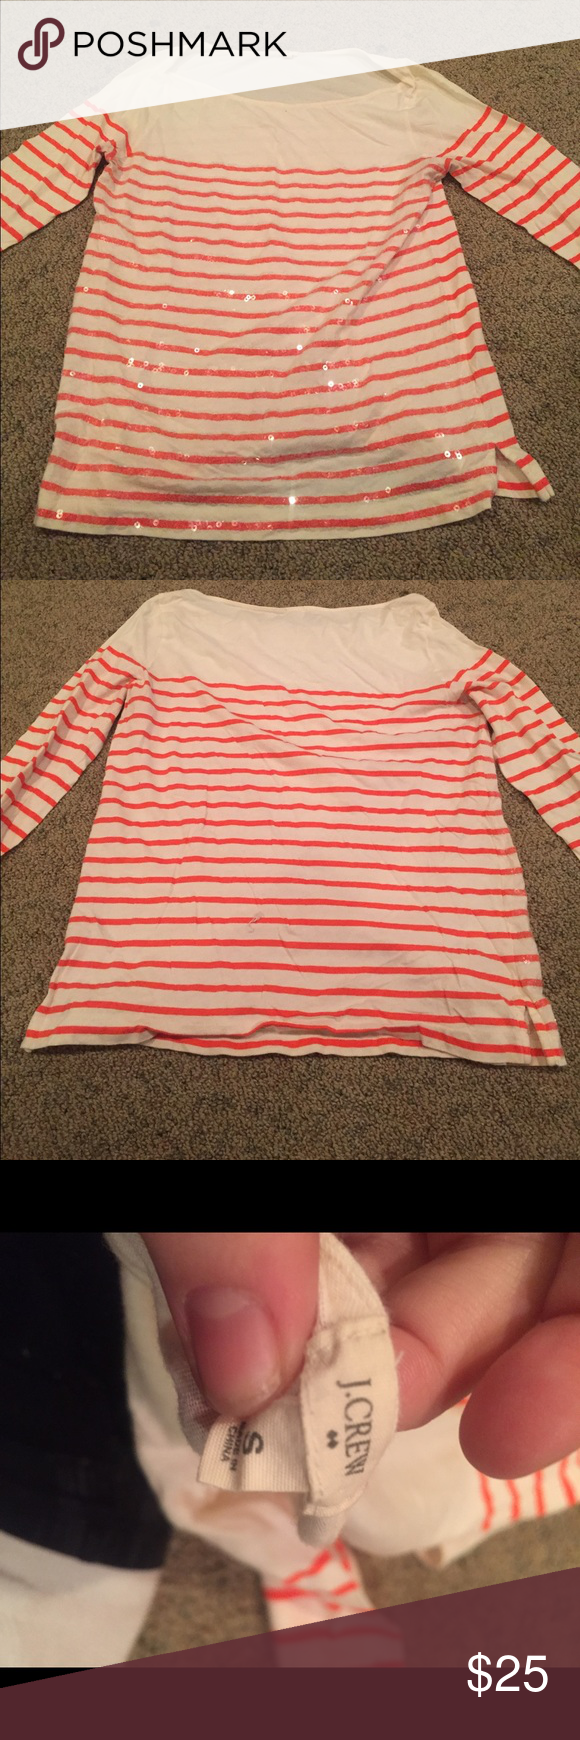 Top Cram and orange striped top J. Crew Tops Tees - Long Sleeve